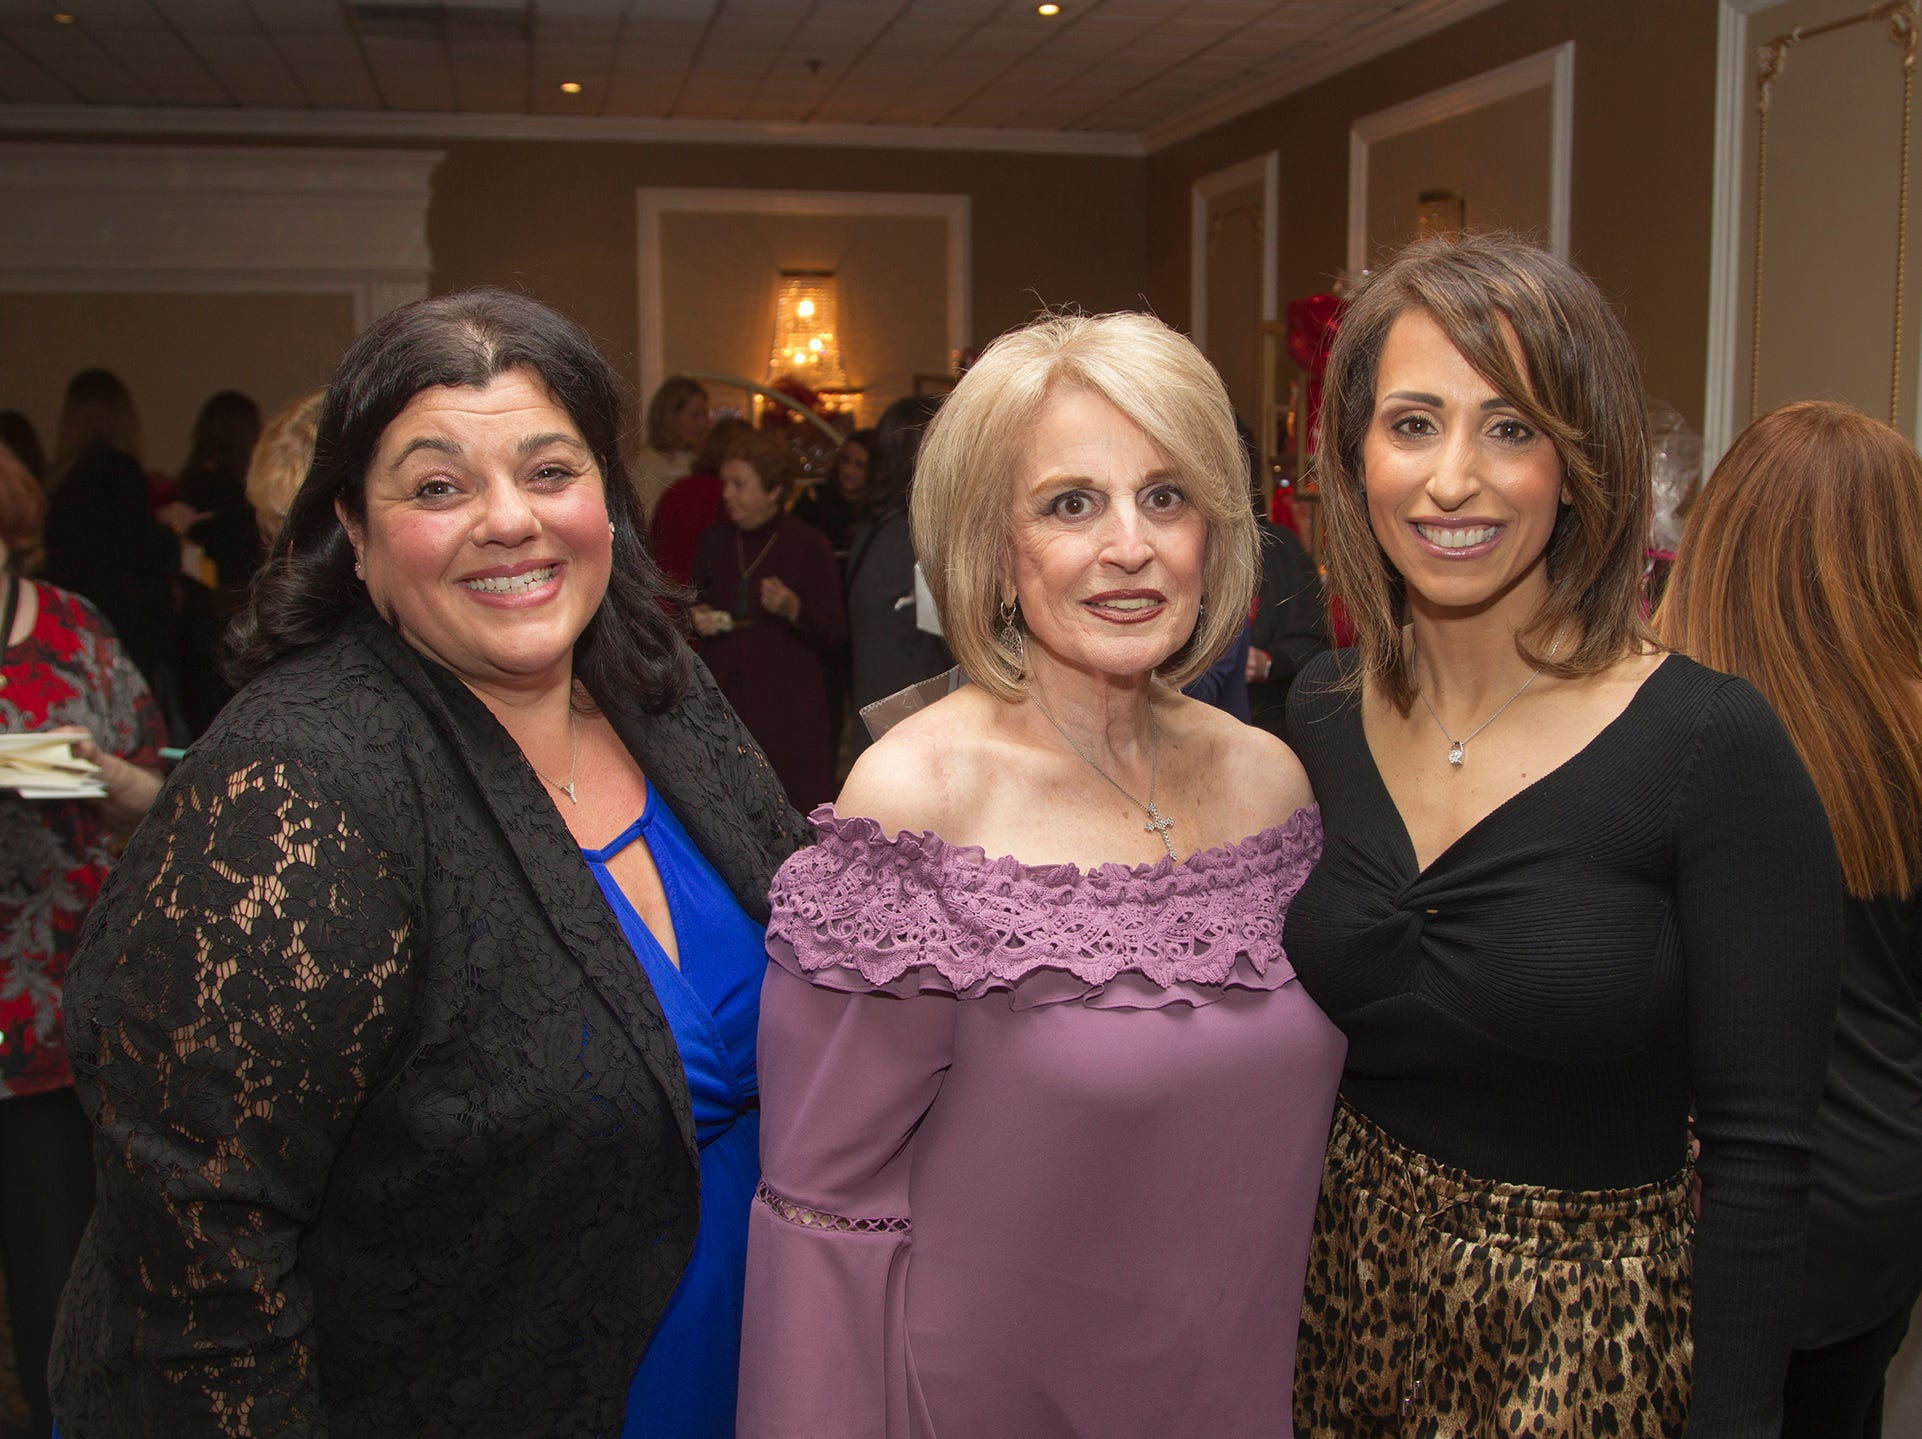 Yolanda Semelsberger, MaryLou Paolino, Nicole Marlan. Immaculate Heart Academy held its annual Fashion Show fundraiser at Florentine Gardens in River Vale. 12/02/2018